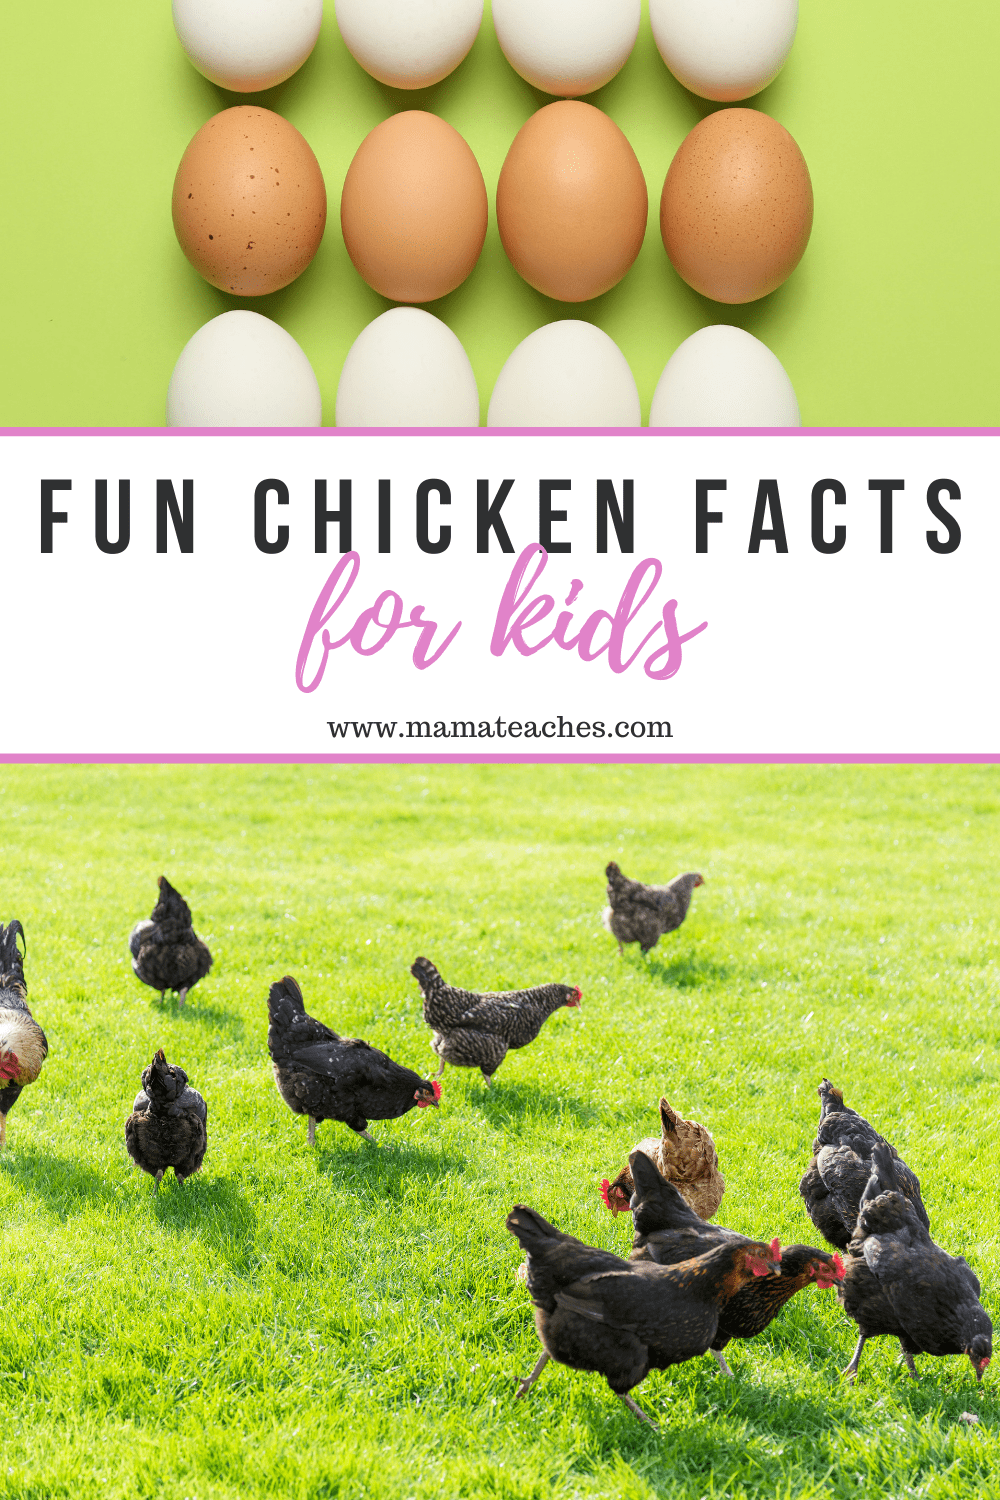 Fun Chicken Facts for Kids